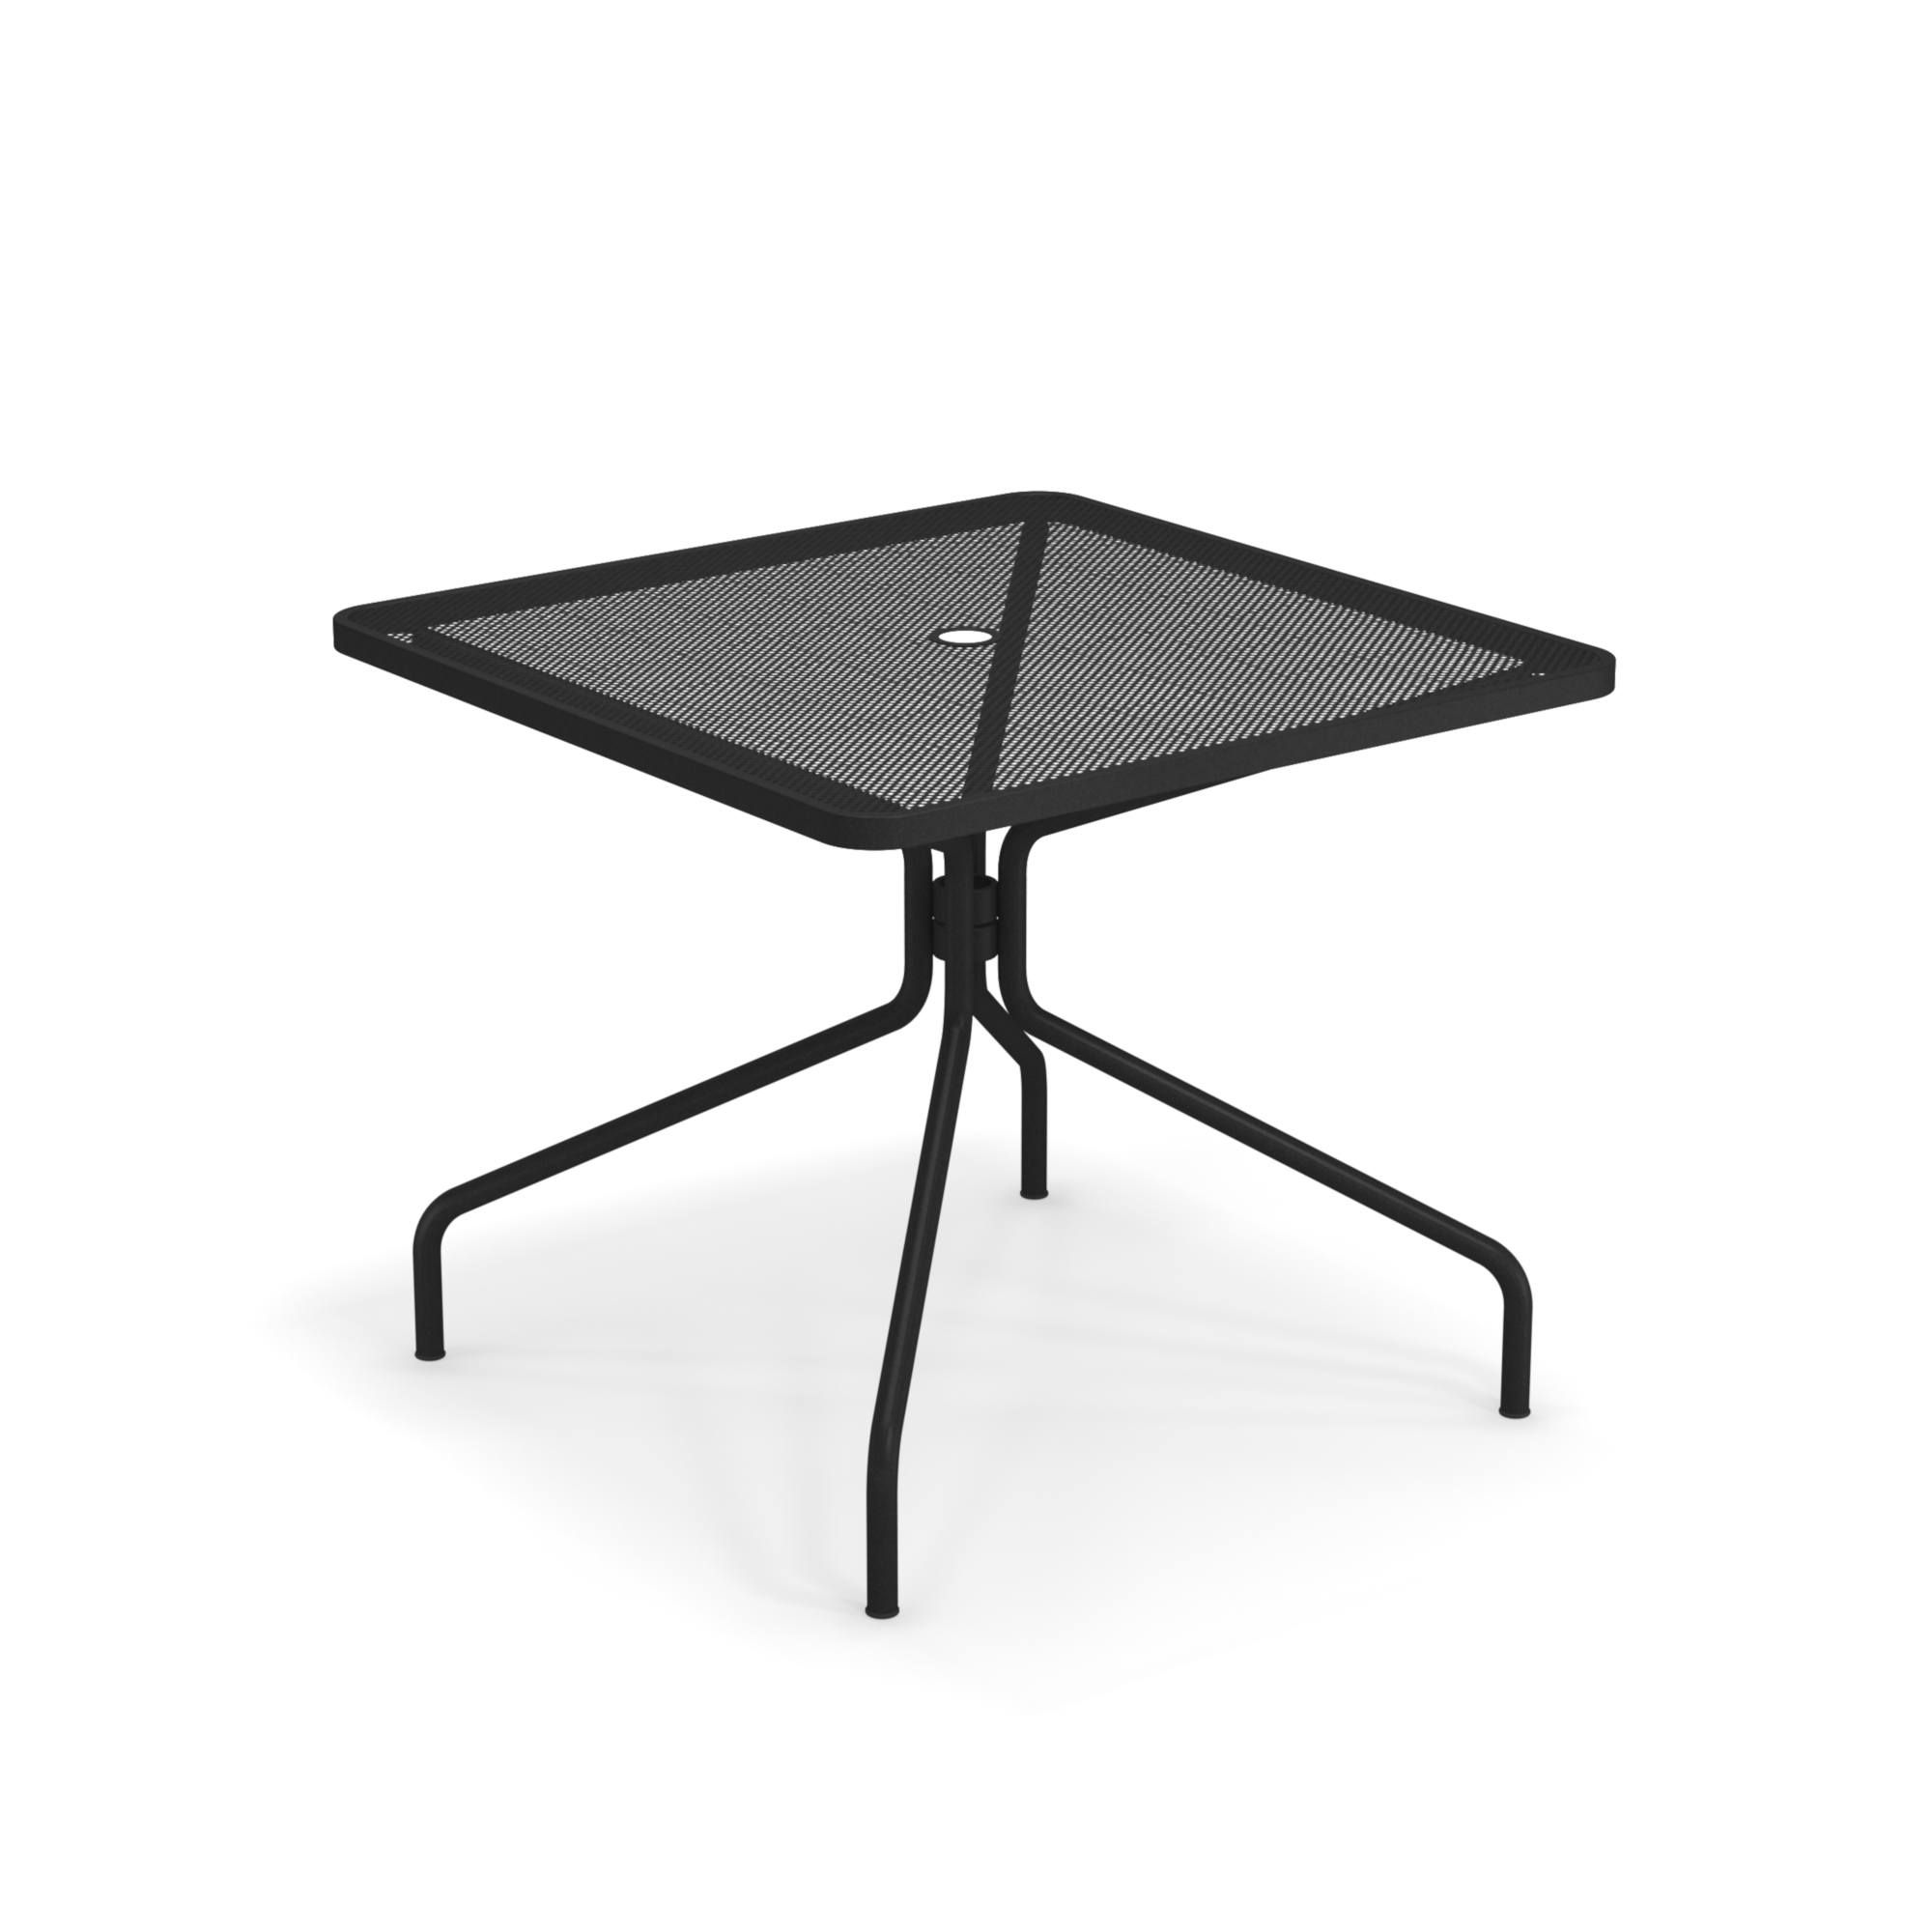 emuamericas, llc 802-24 table, outdoor